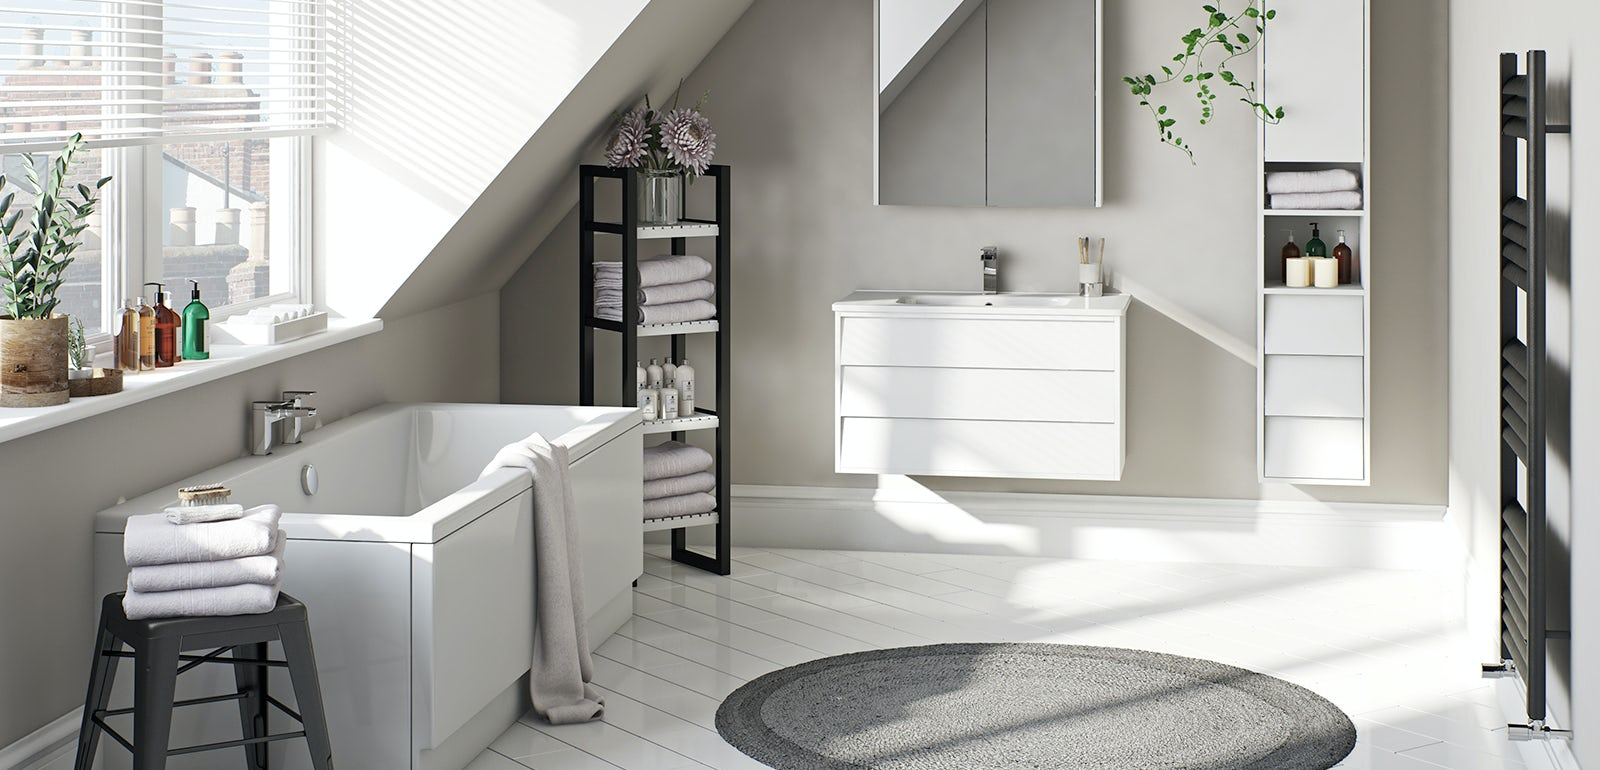 A traditional bathroom set-up with a white vanity unit and tall white cupboards